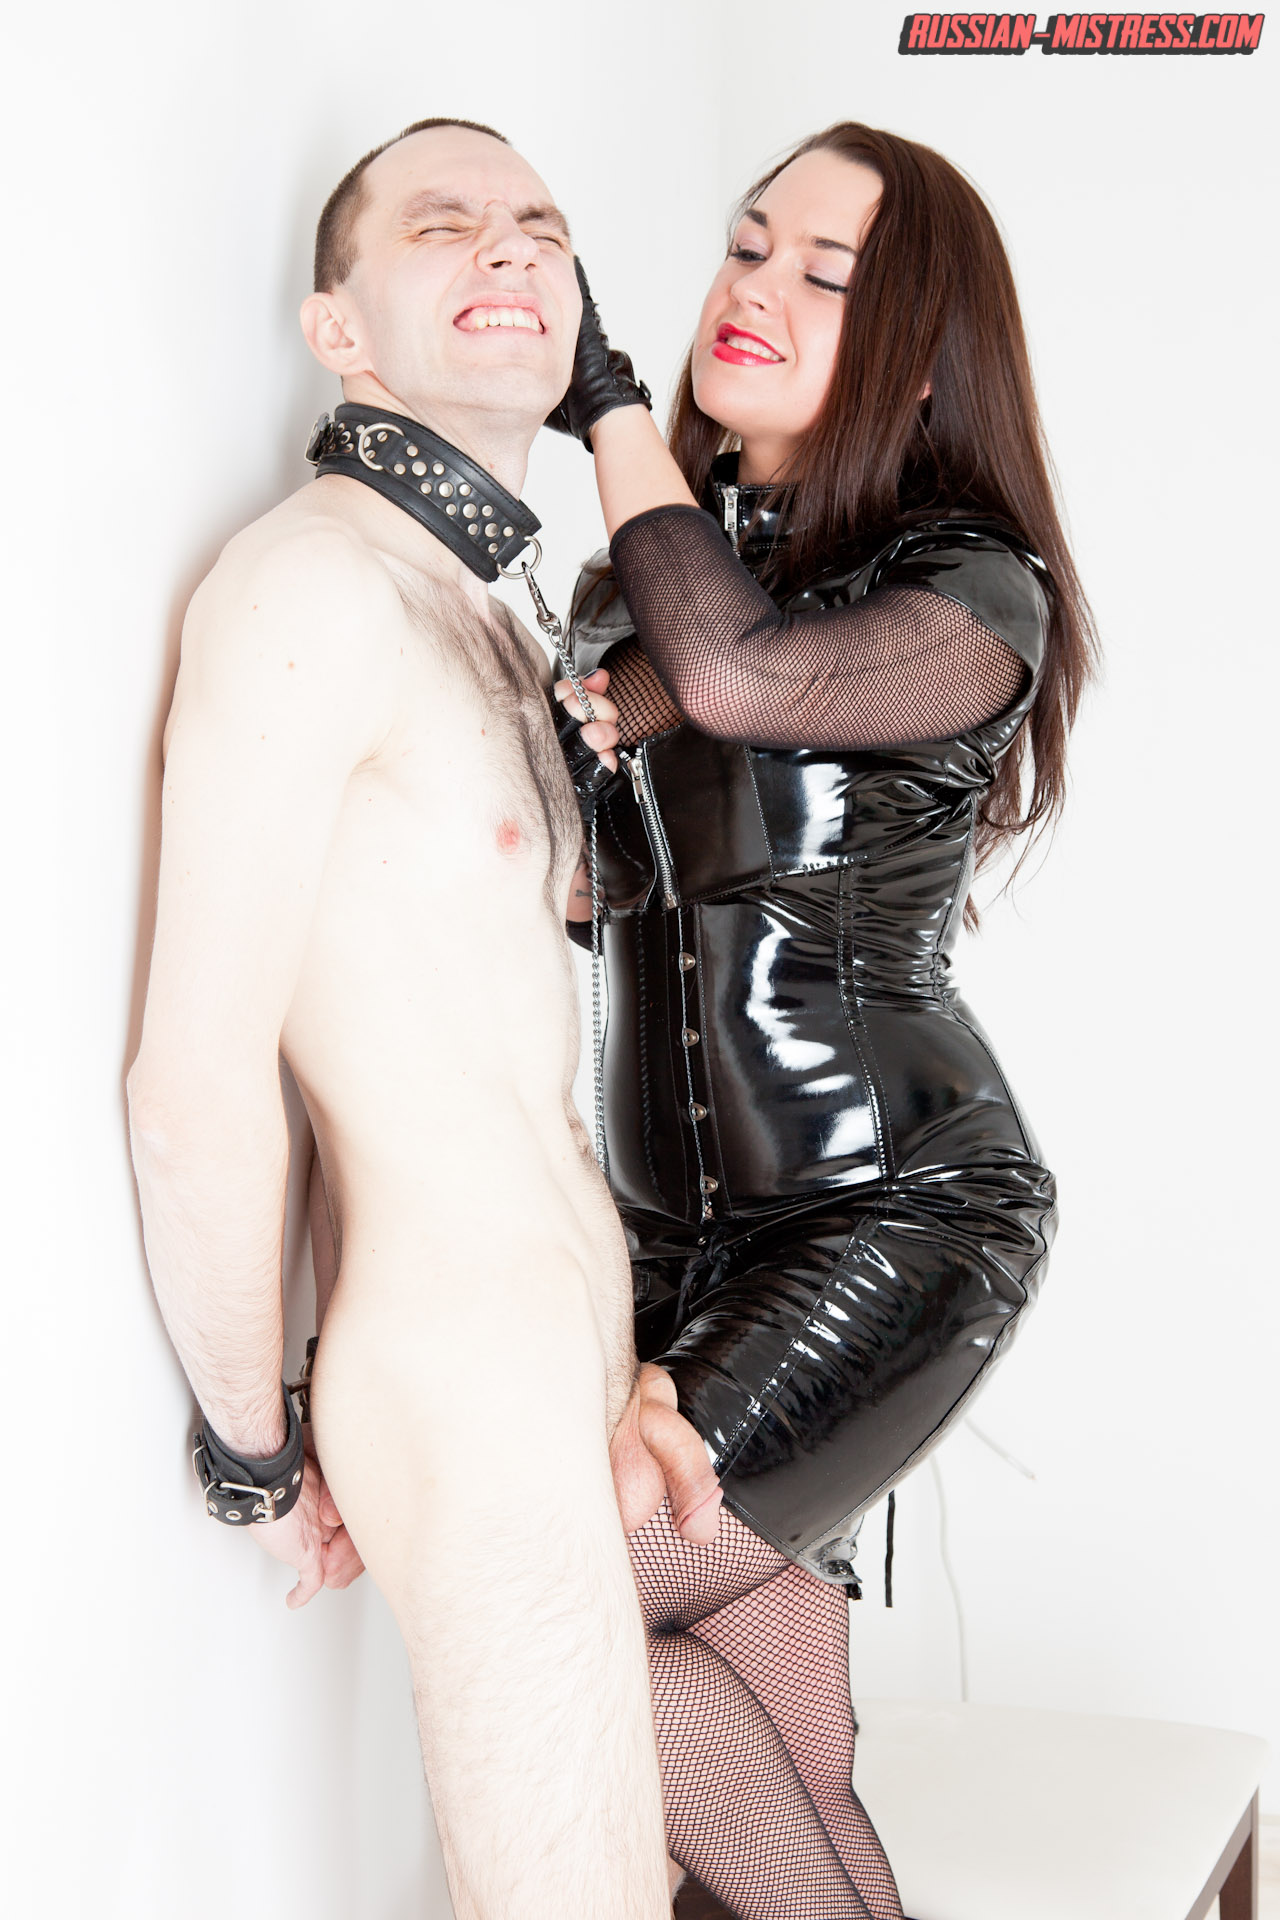 A pathetic wanker getting exposed for his mistress 3